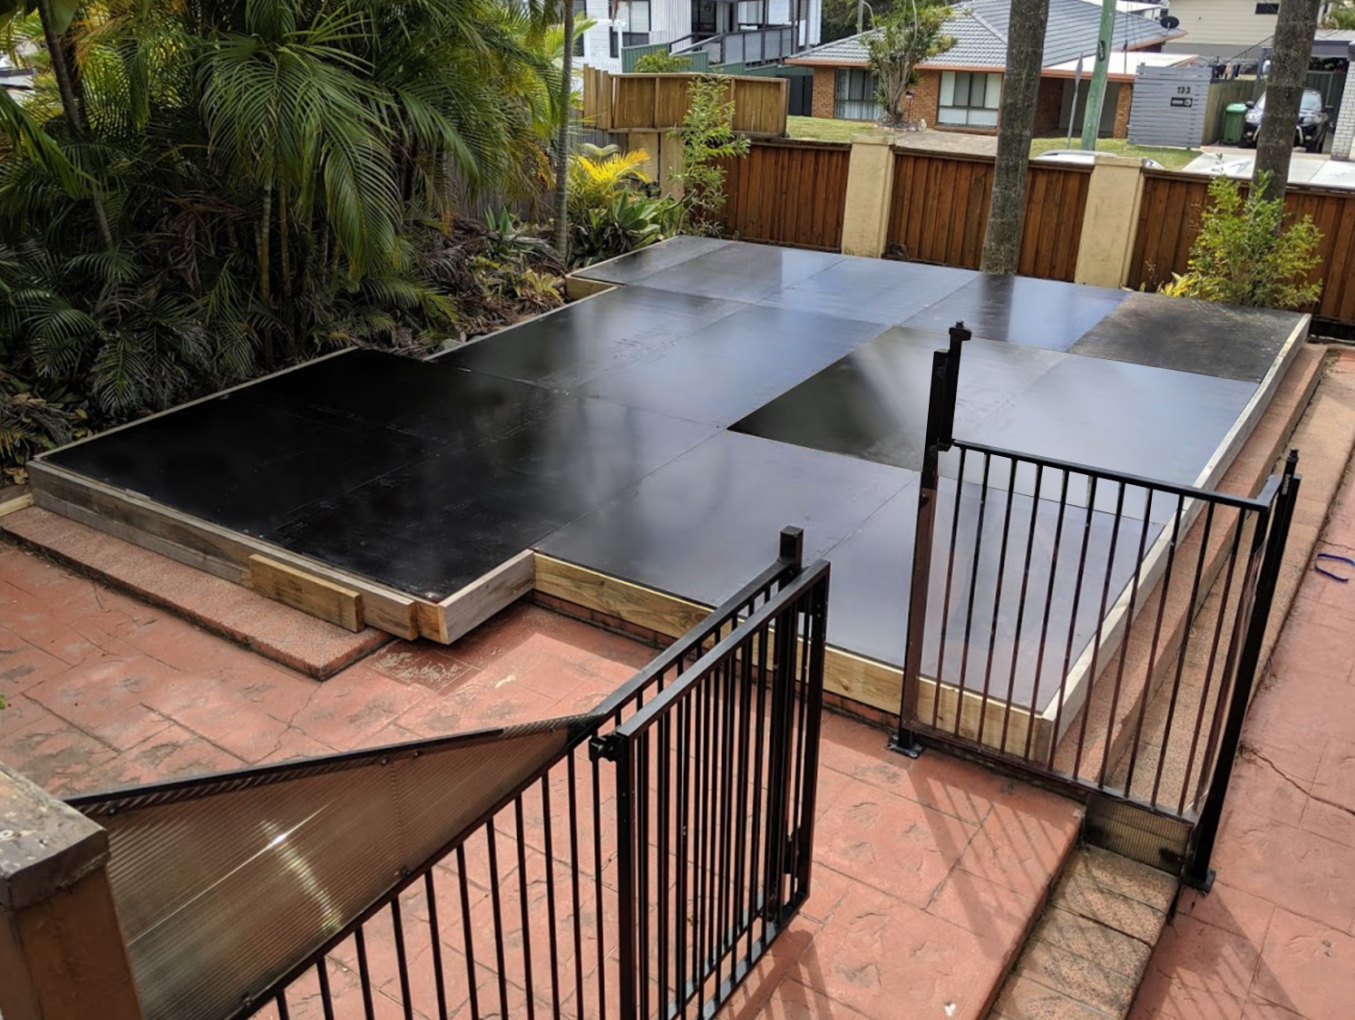 Knock down and rebuild hard pool cover during construction